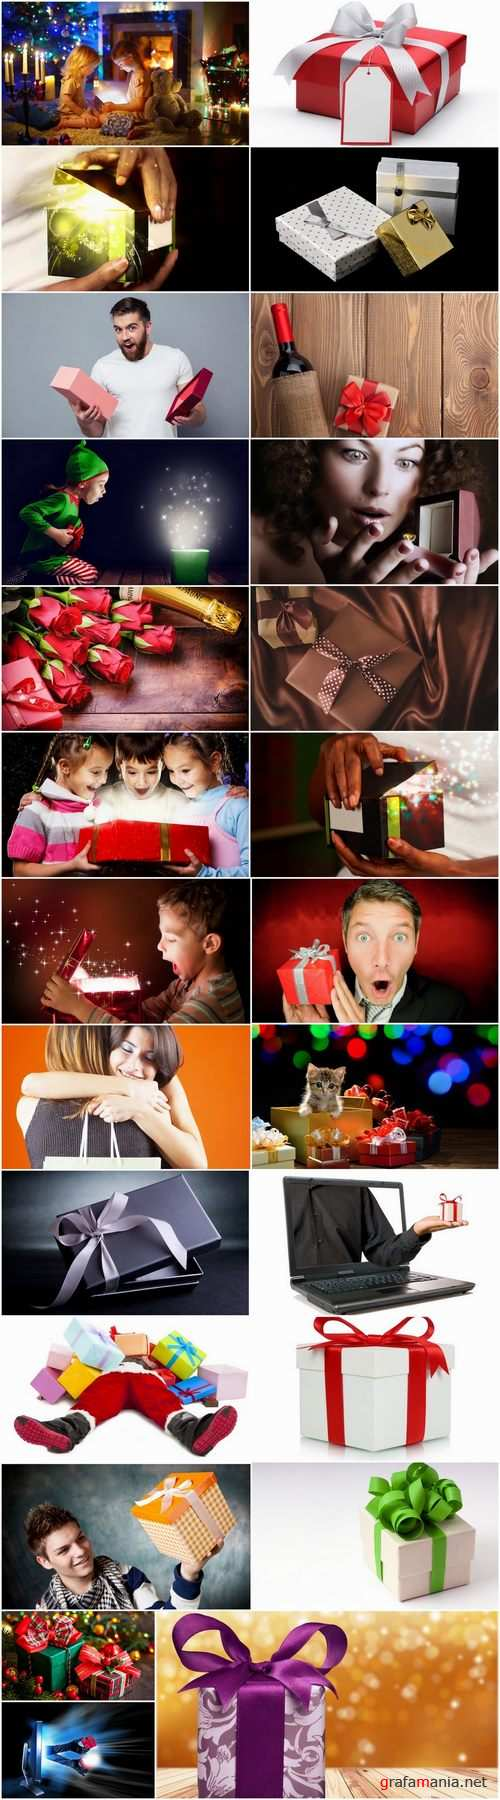 Gift box surprise holiday joy 25 HQ Jpeg